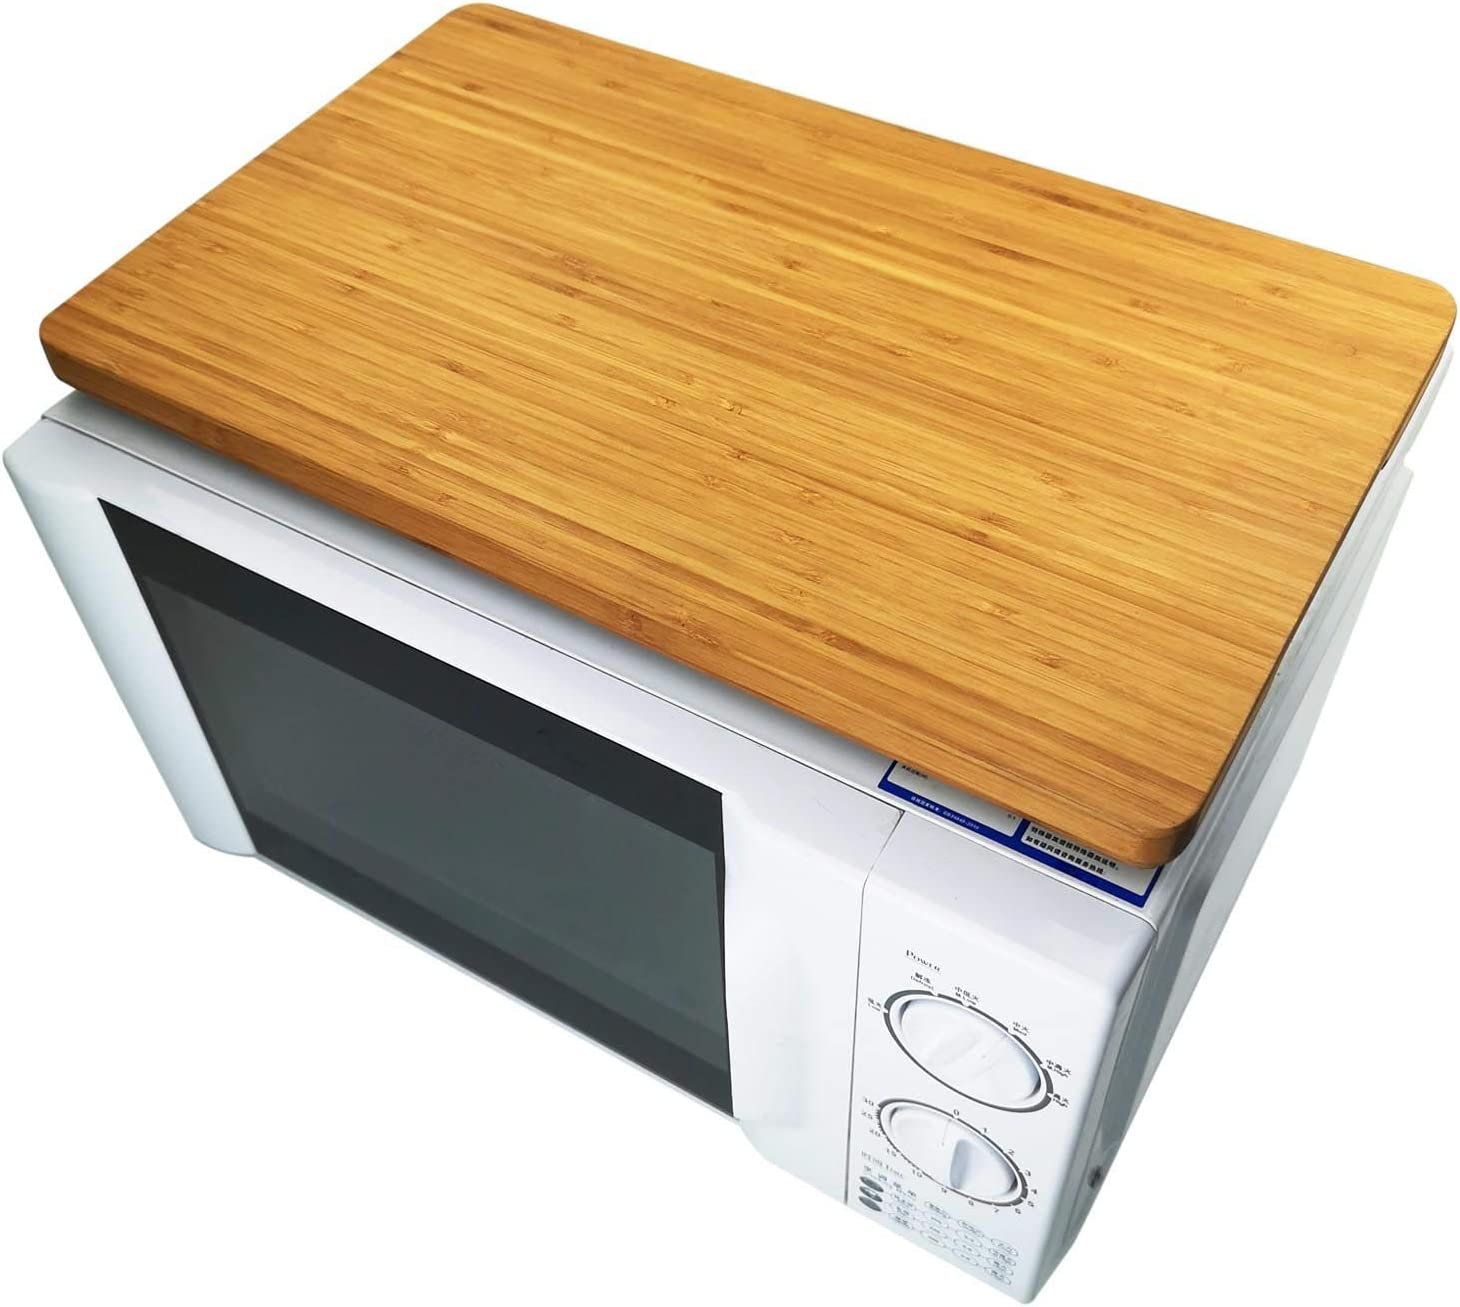 Smart Oven Top Bamboo Cutting Board For Kitchen, HI-BOV800CB, Convection Toaster Oven Butcher Block with Anti-Slip Feet, 17.8x10.8